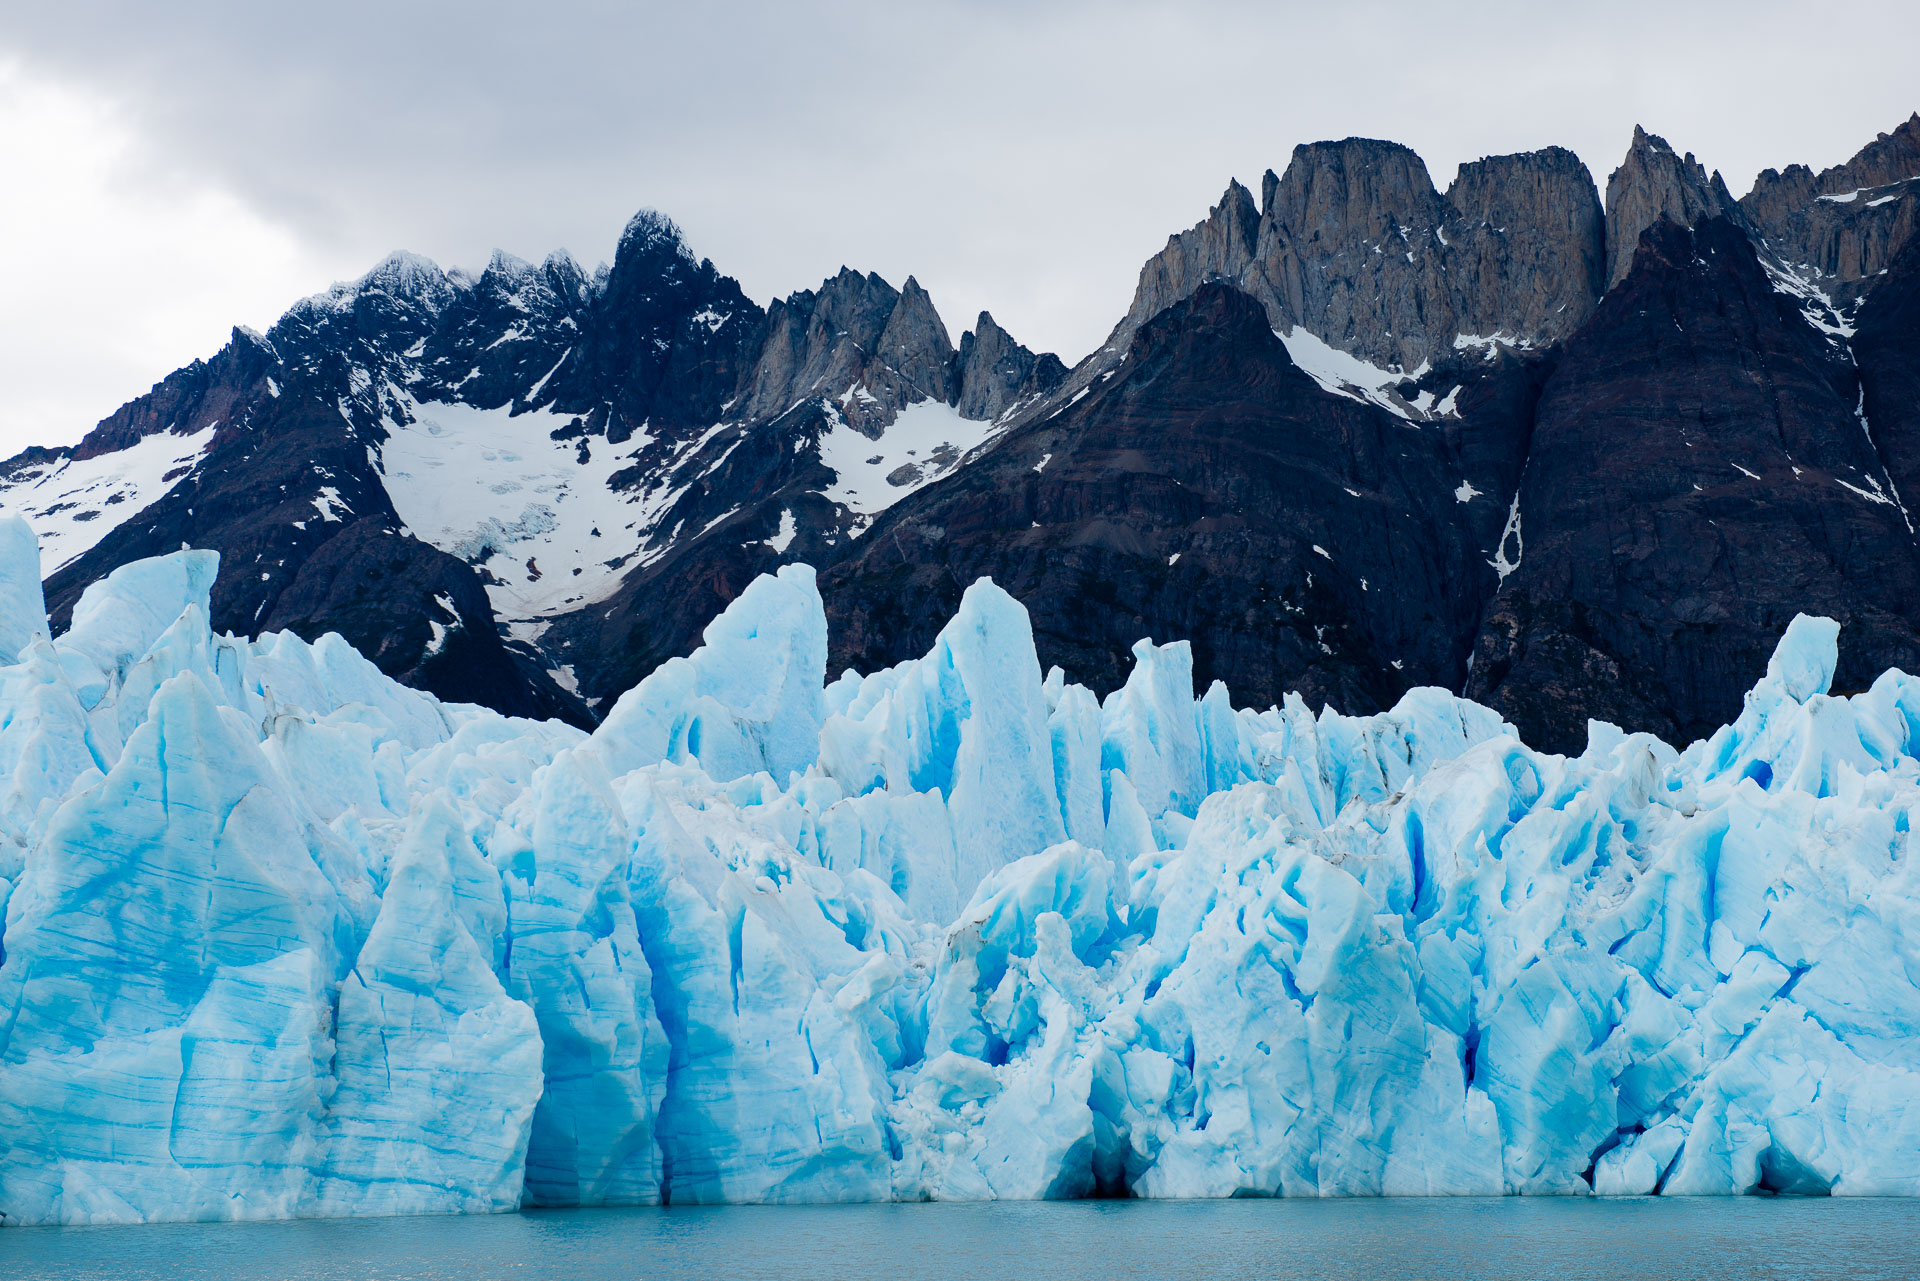 patagonia-chatwin_22